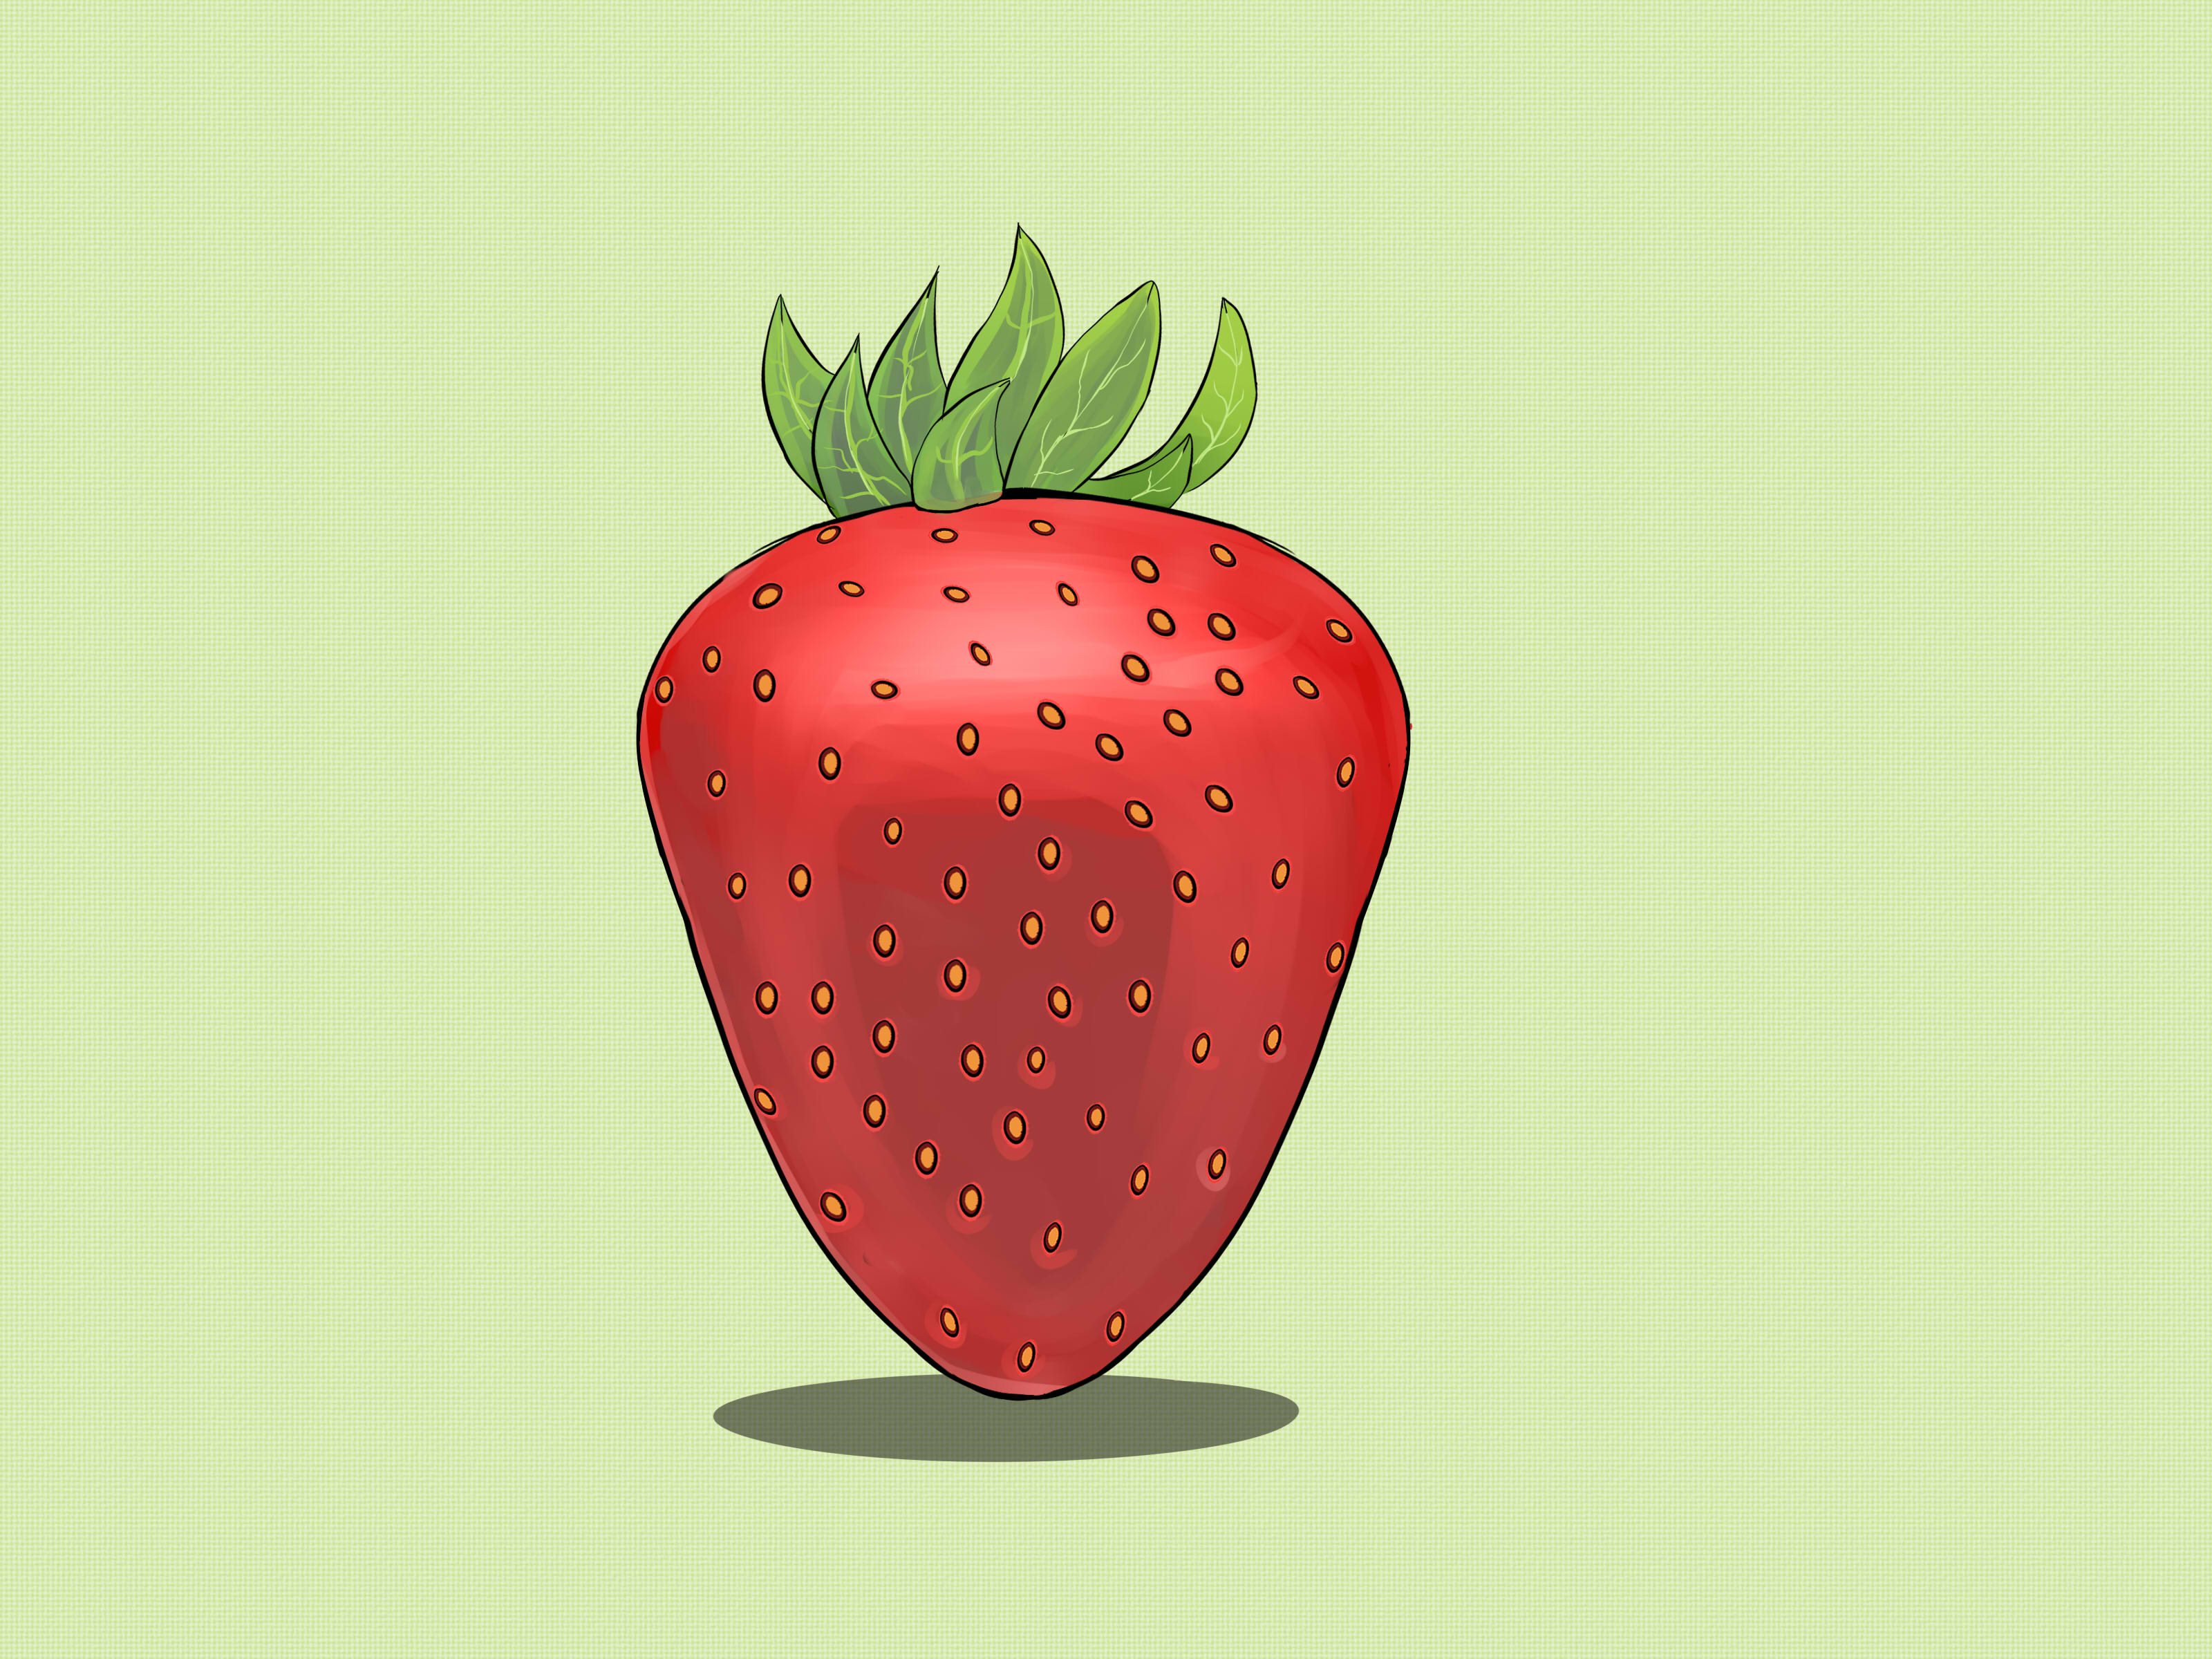 Drawn strawberry strawberry leaf WikiHow Draw (with Steps